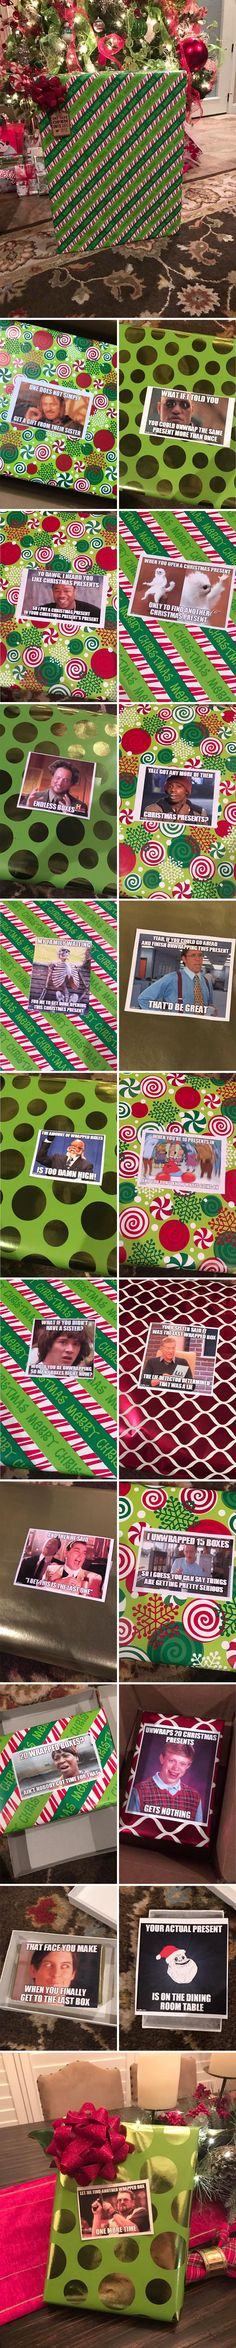 My Friend's Sister Had Some Fun With His Gift Wrapping